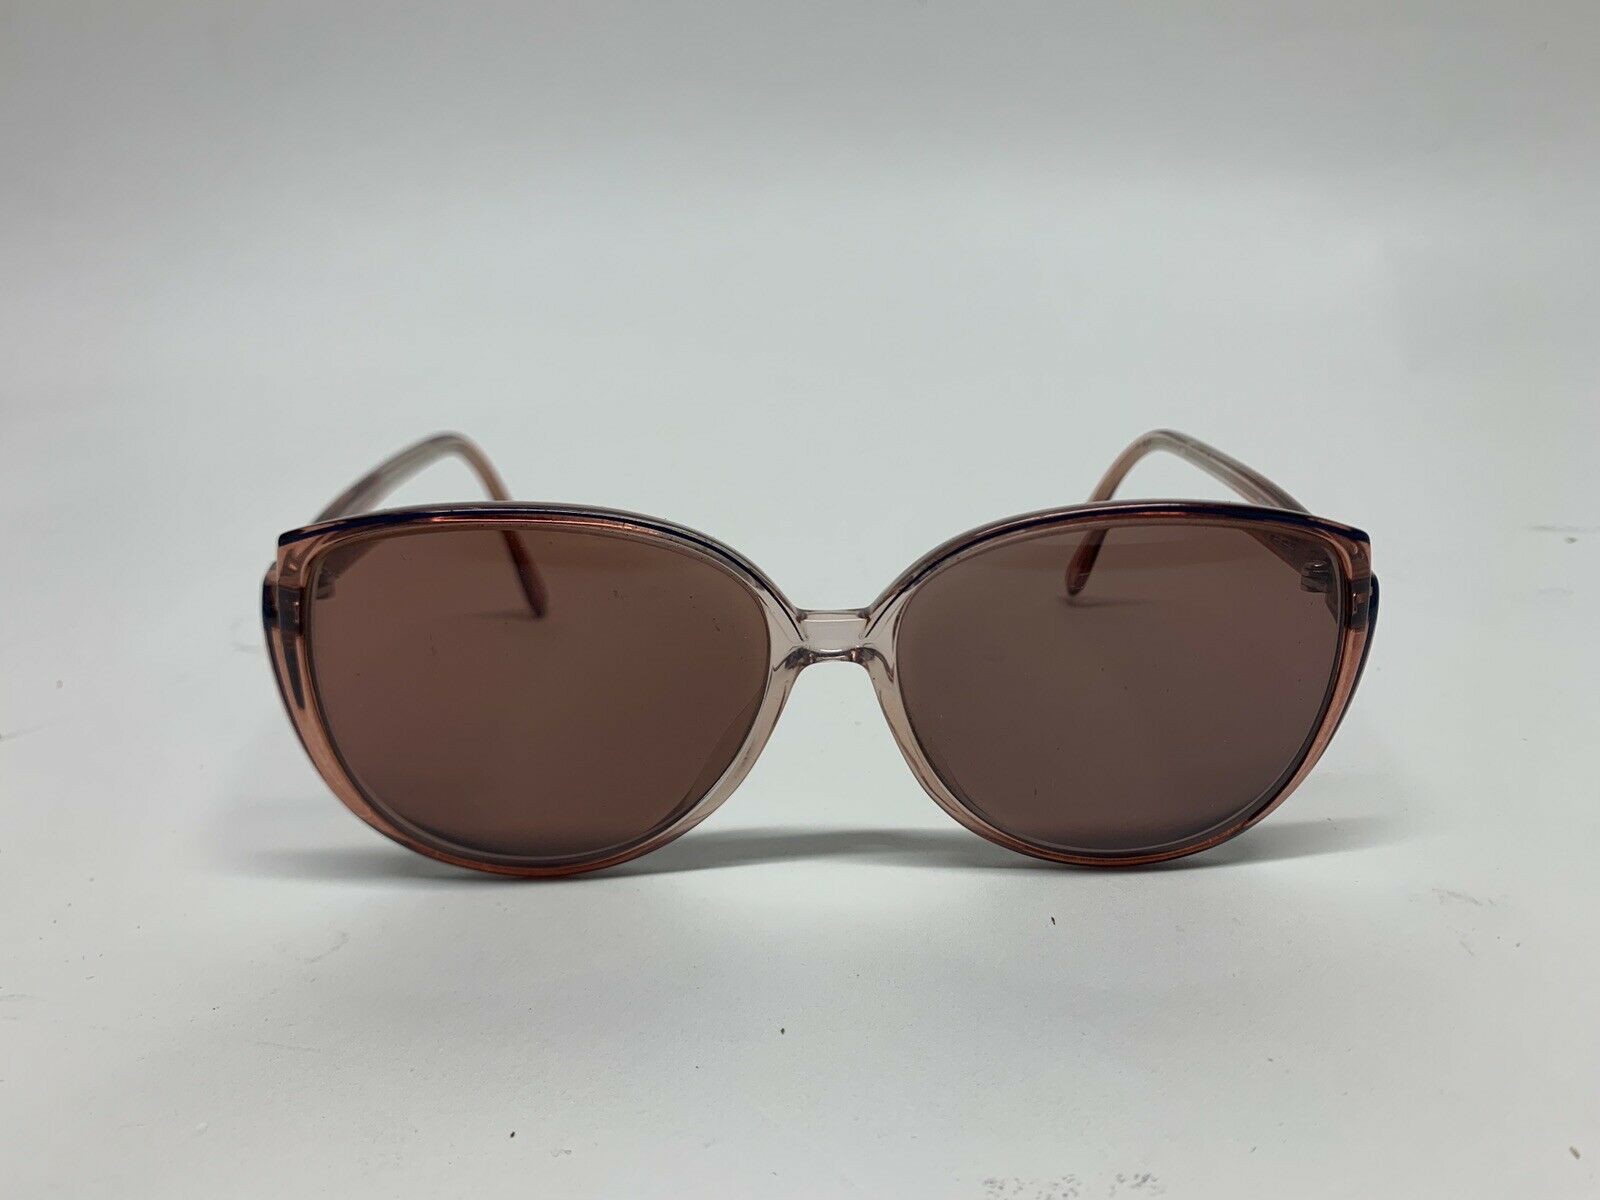 Vintage Austrian Sunglasses By Silhouette From Th… - image 1